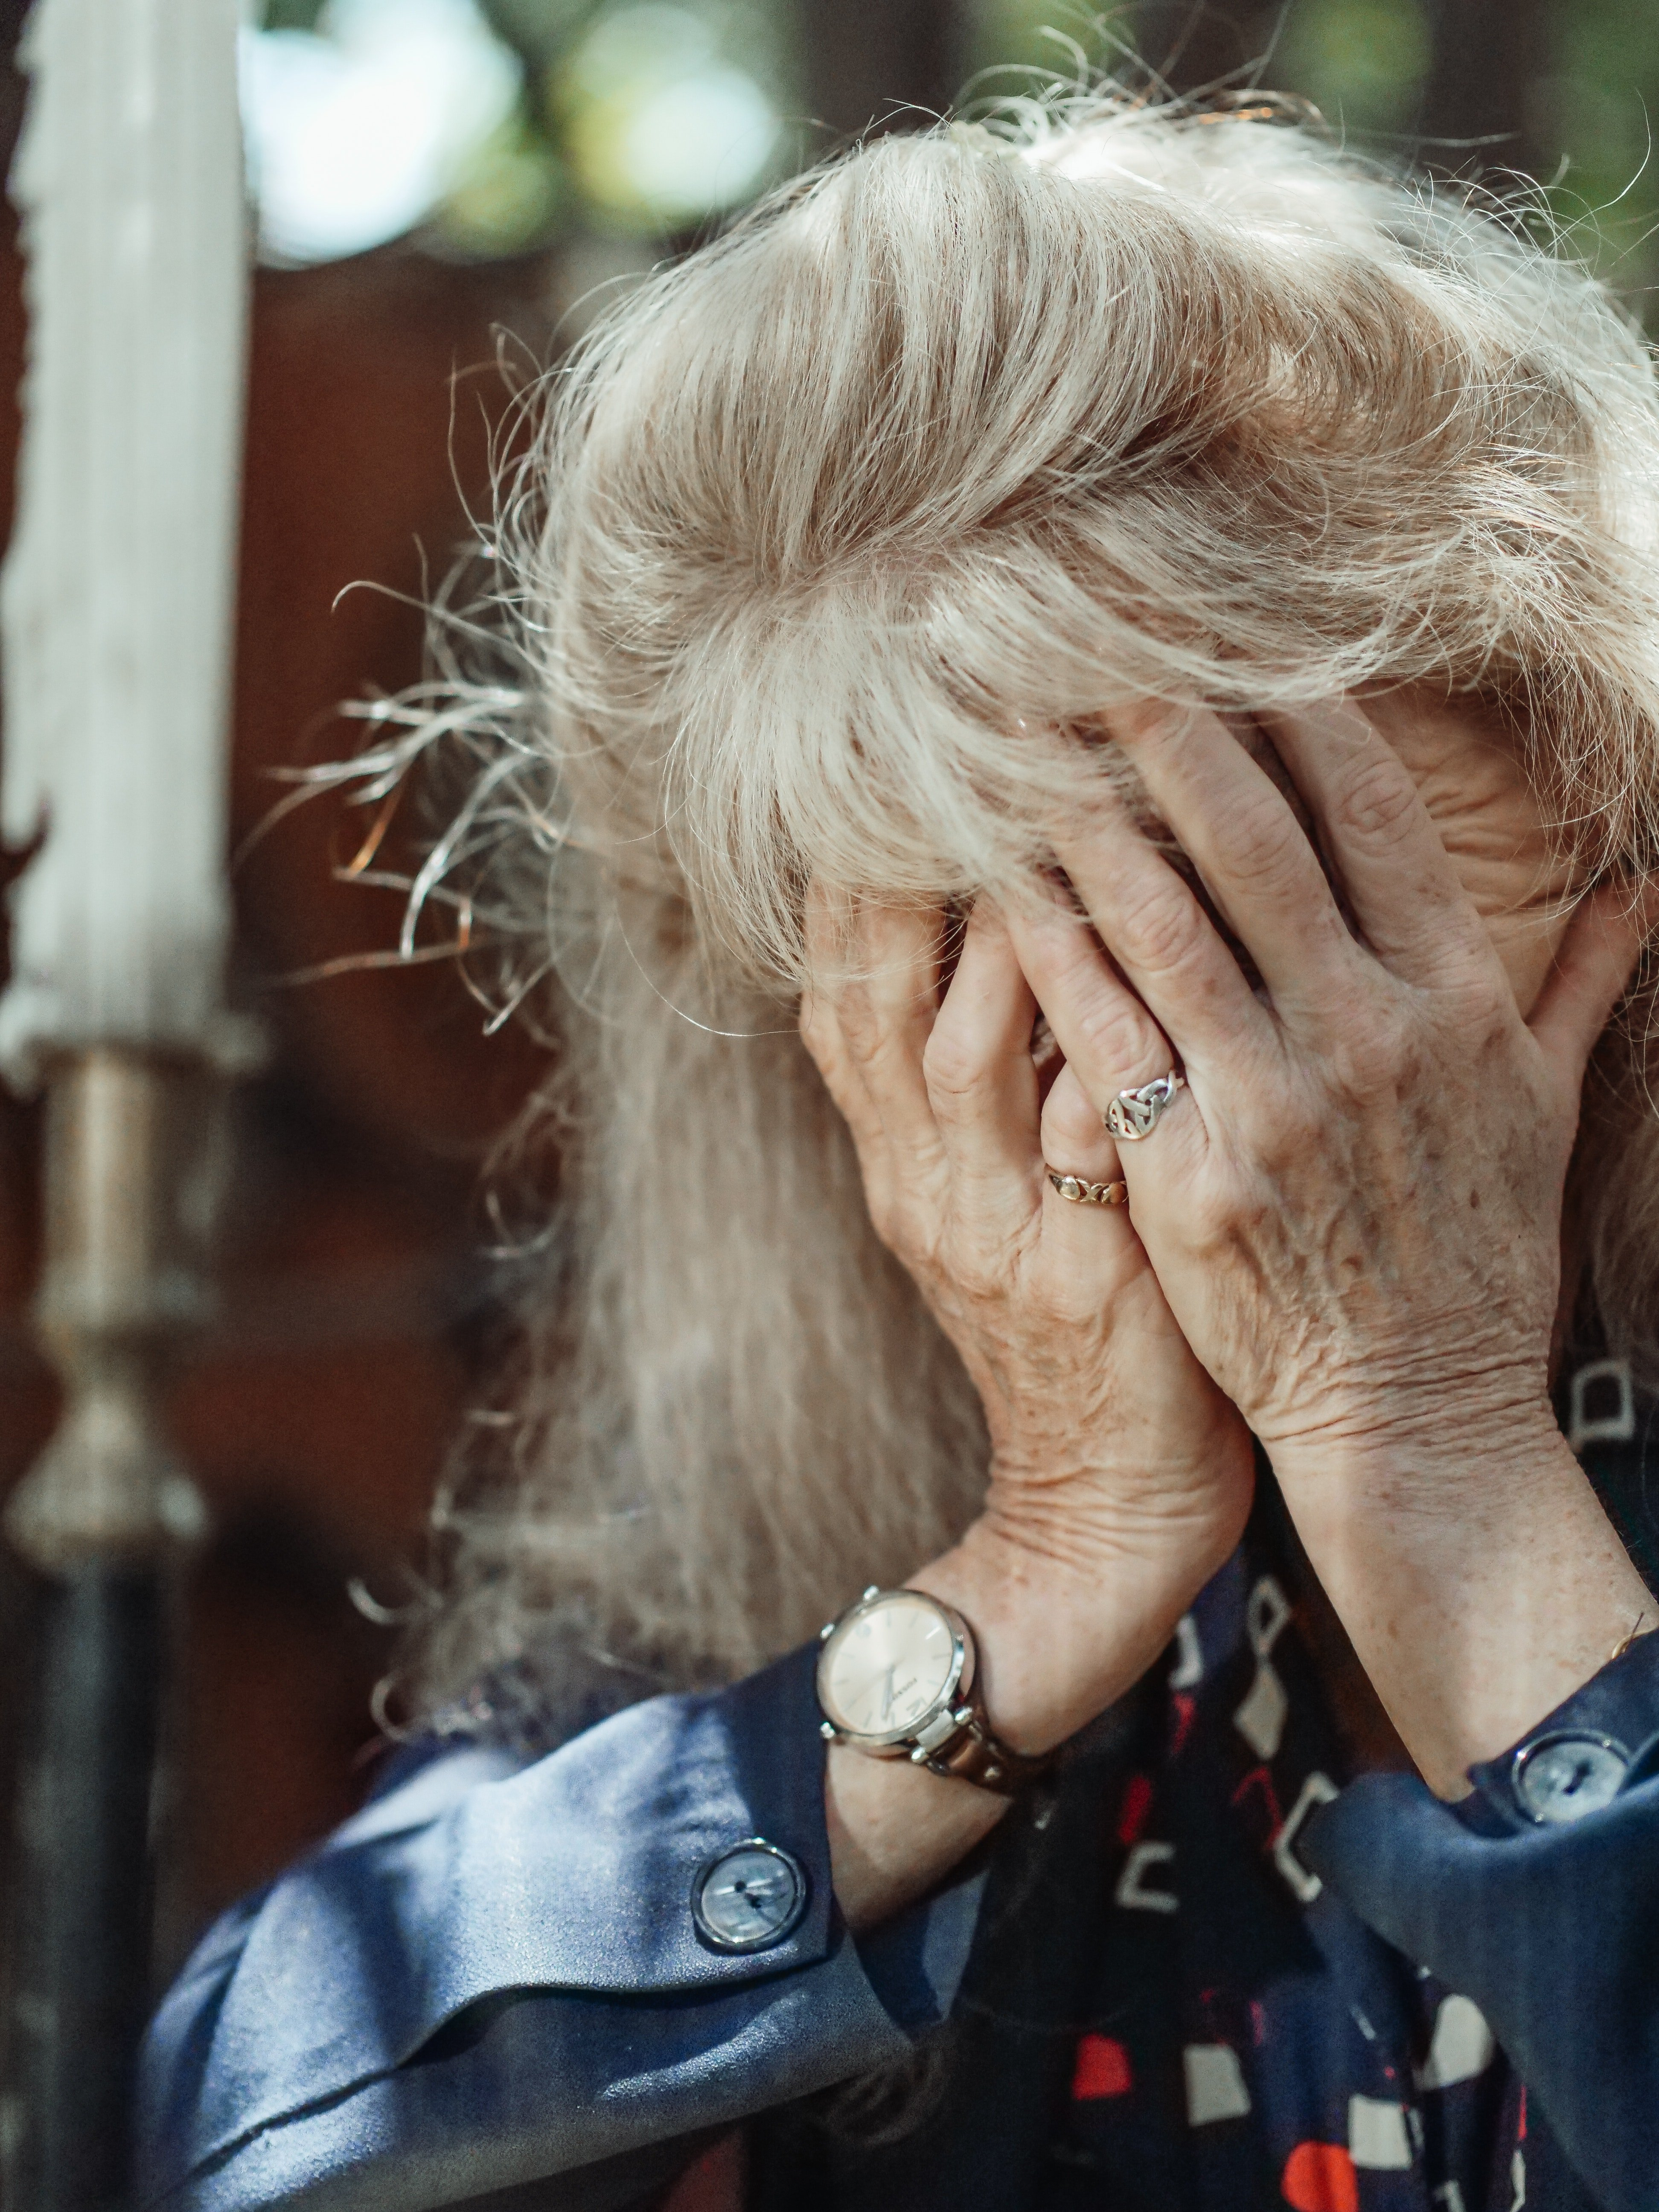 Mrs. Duncan was crying inconsolably because she didn't have enough money to buy paint | Photo: Pexels